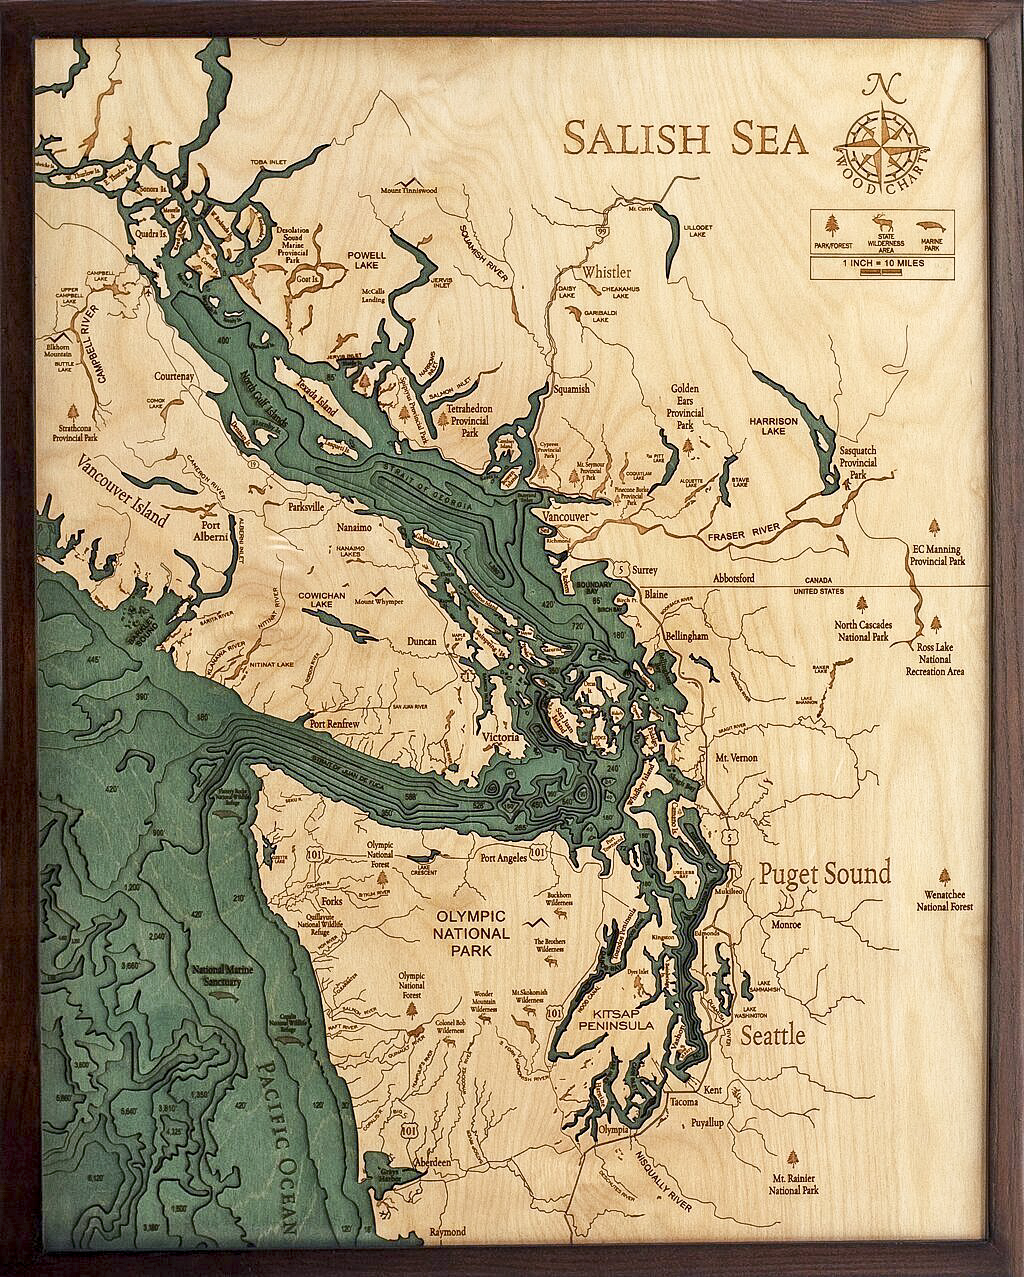 Bathymetric Map Salish Sea, Washington